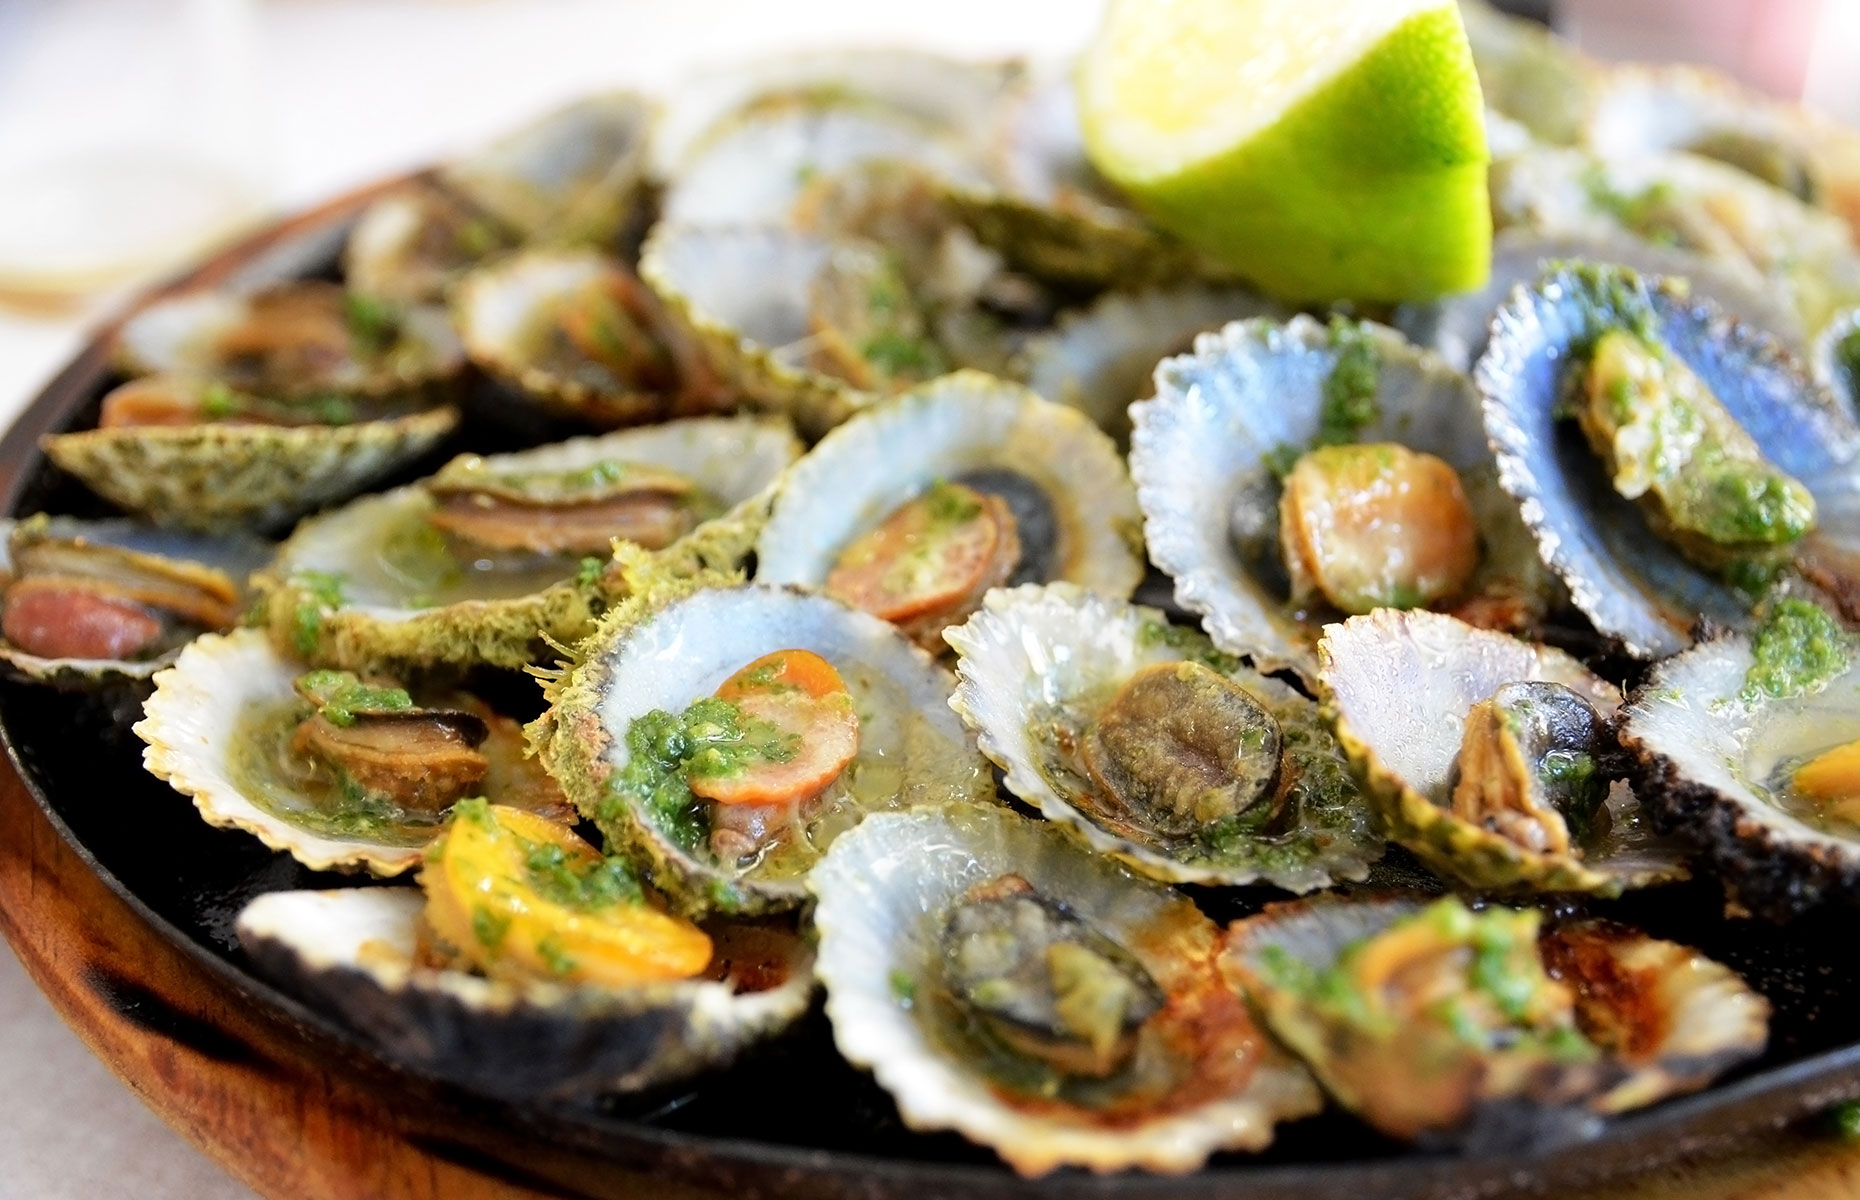 Lapas grelhadas or grilled limpets is a local speciality (Image: svf74/Shutterstock)